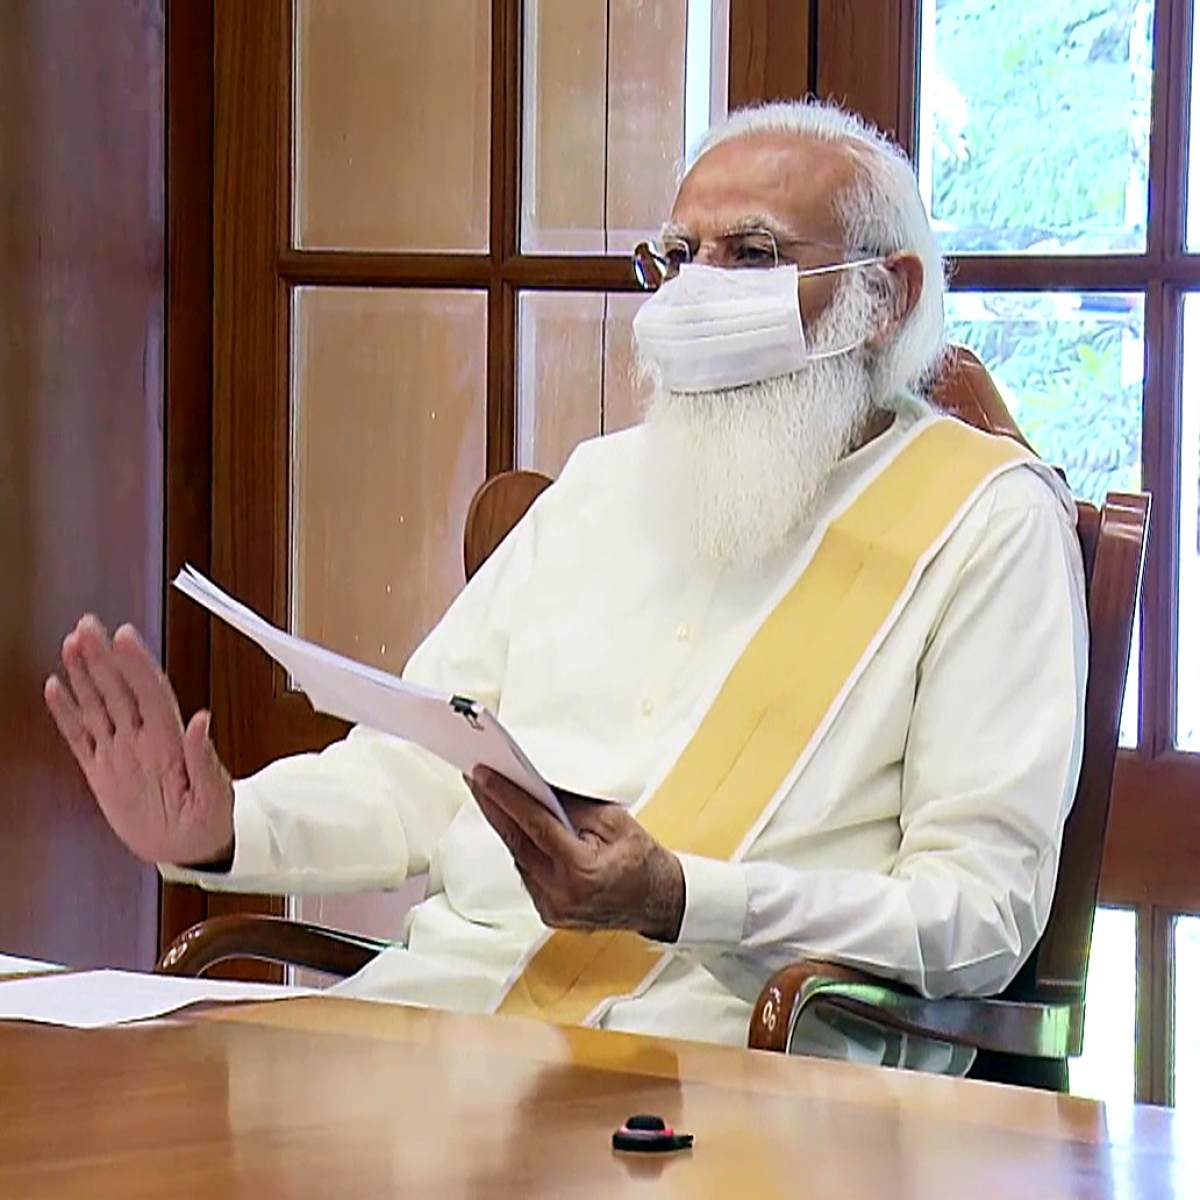 PM Modi reviews COVID-19 situation with Chief Ministers of Rajasthan, Chhattisgarh, UP, Puducherry